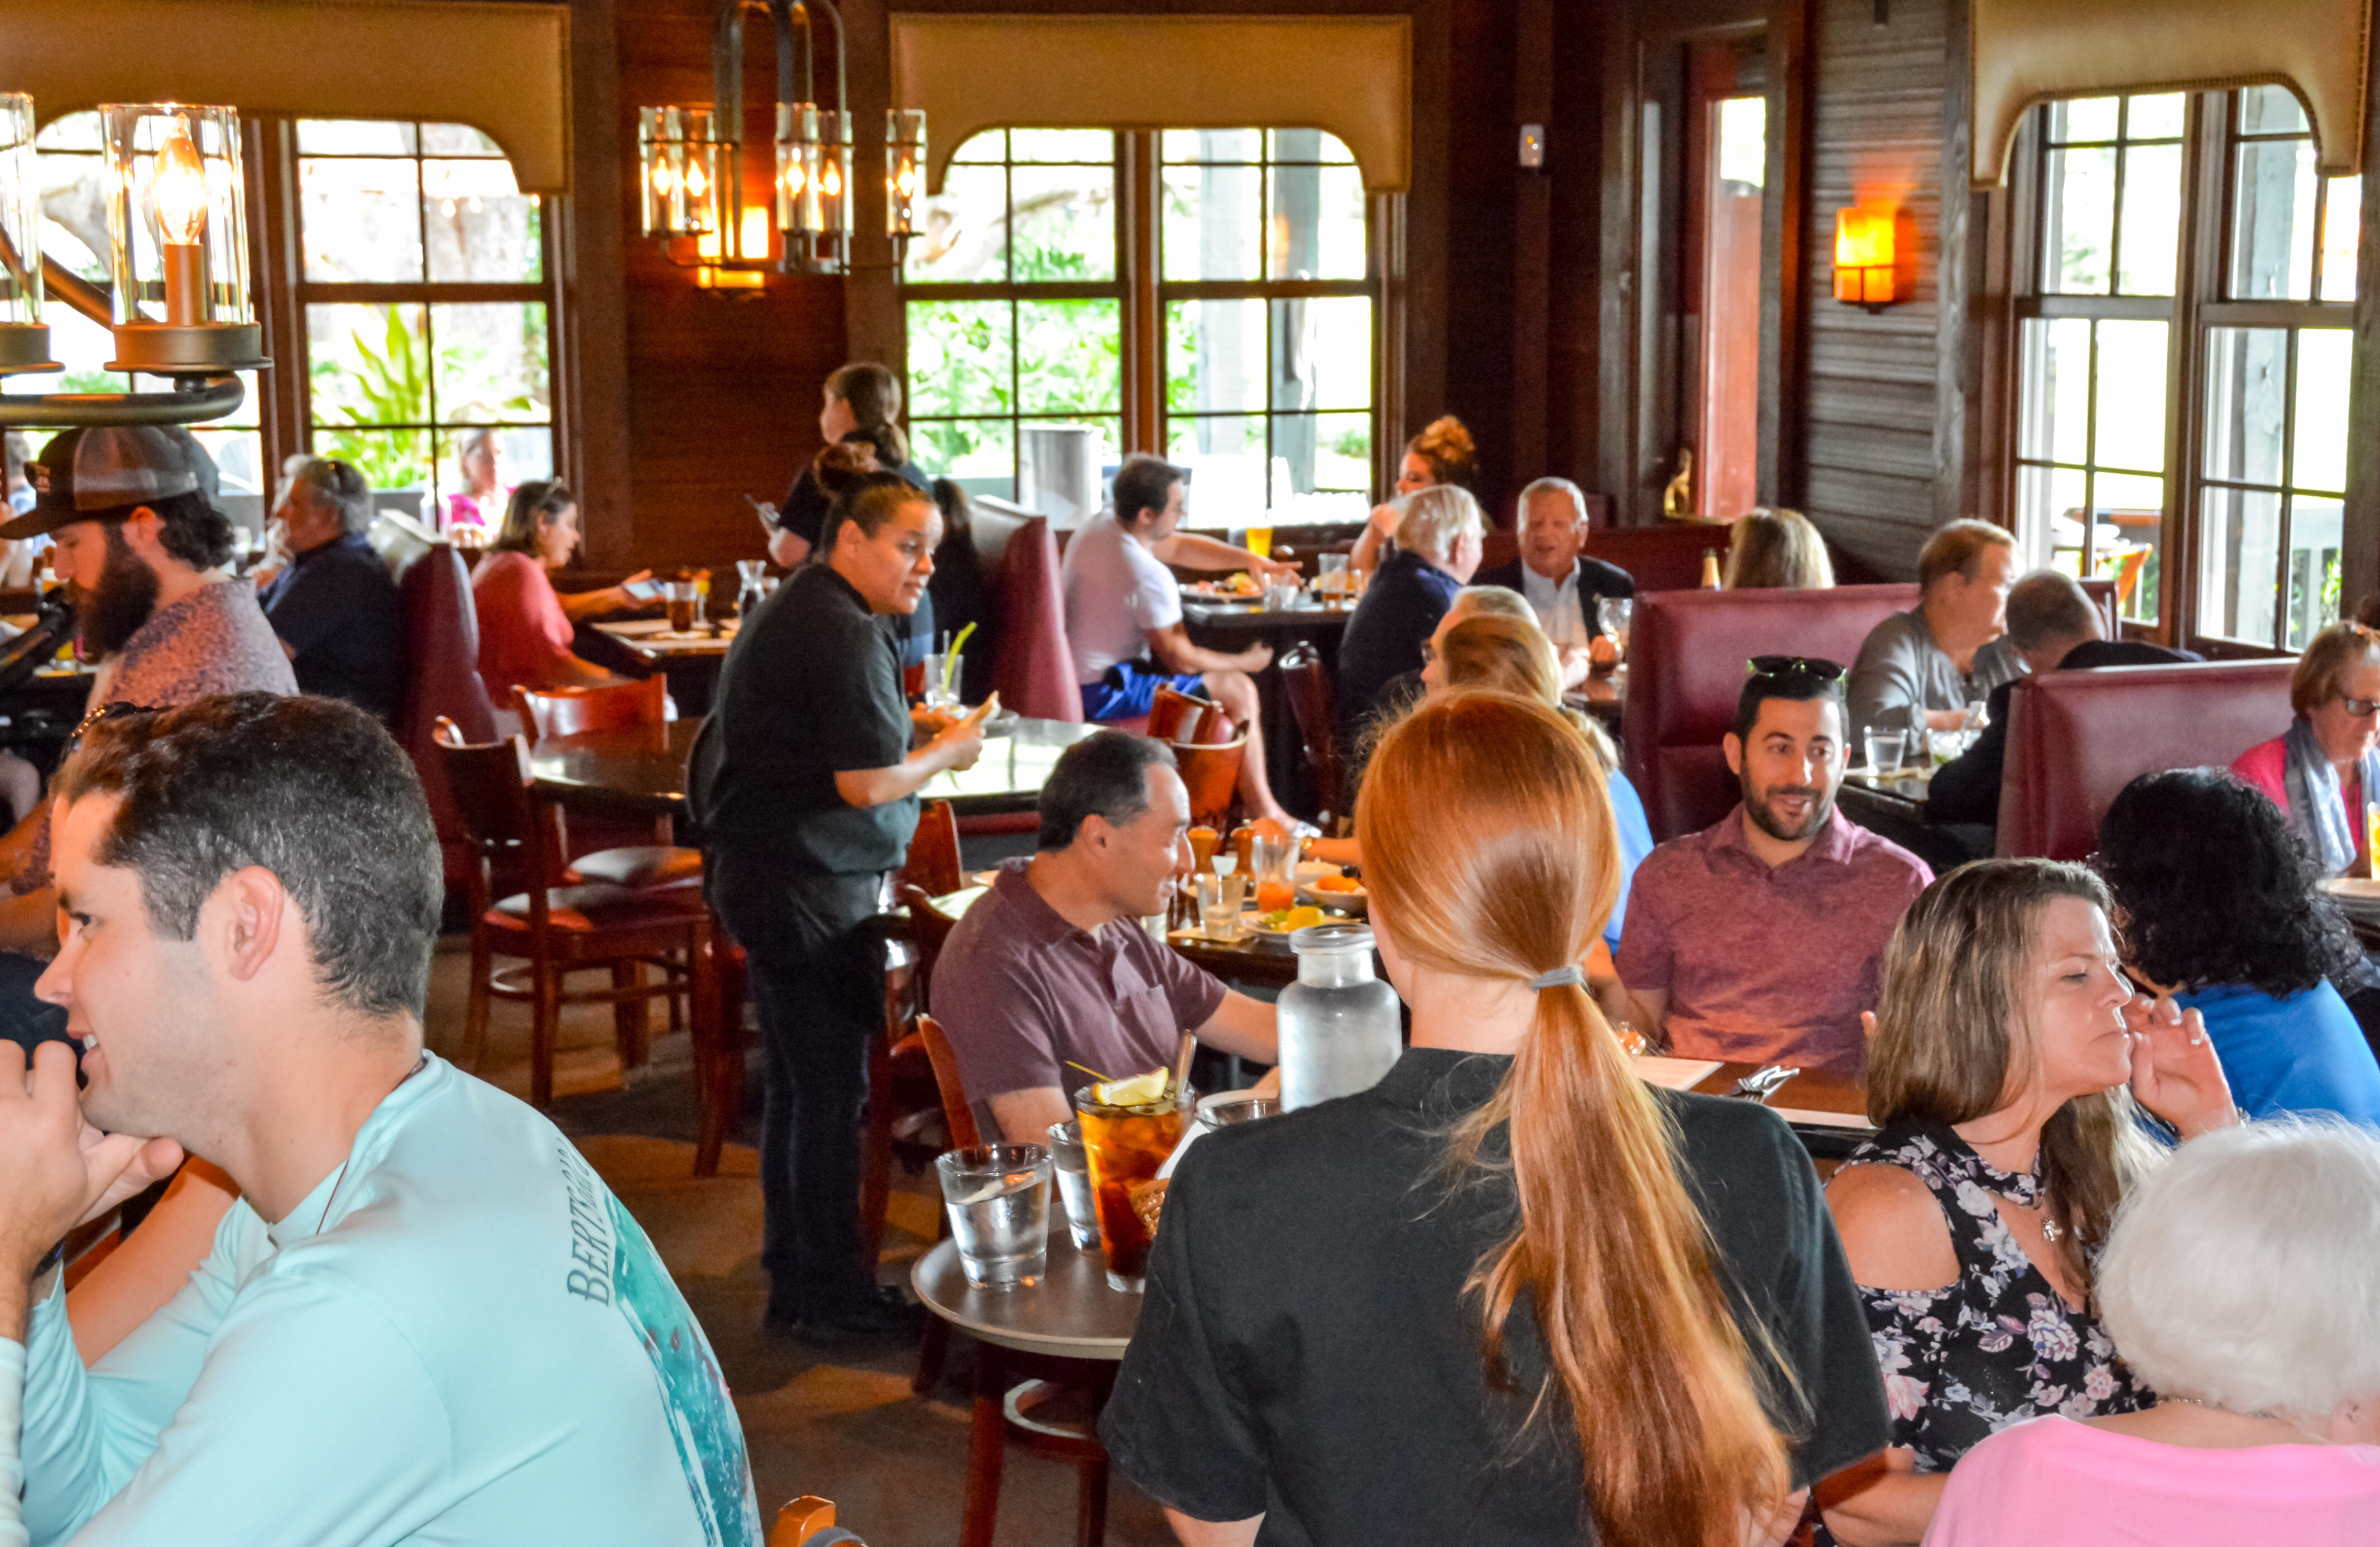 Wide shot of guests enjoying the taproom